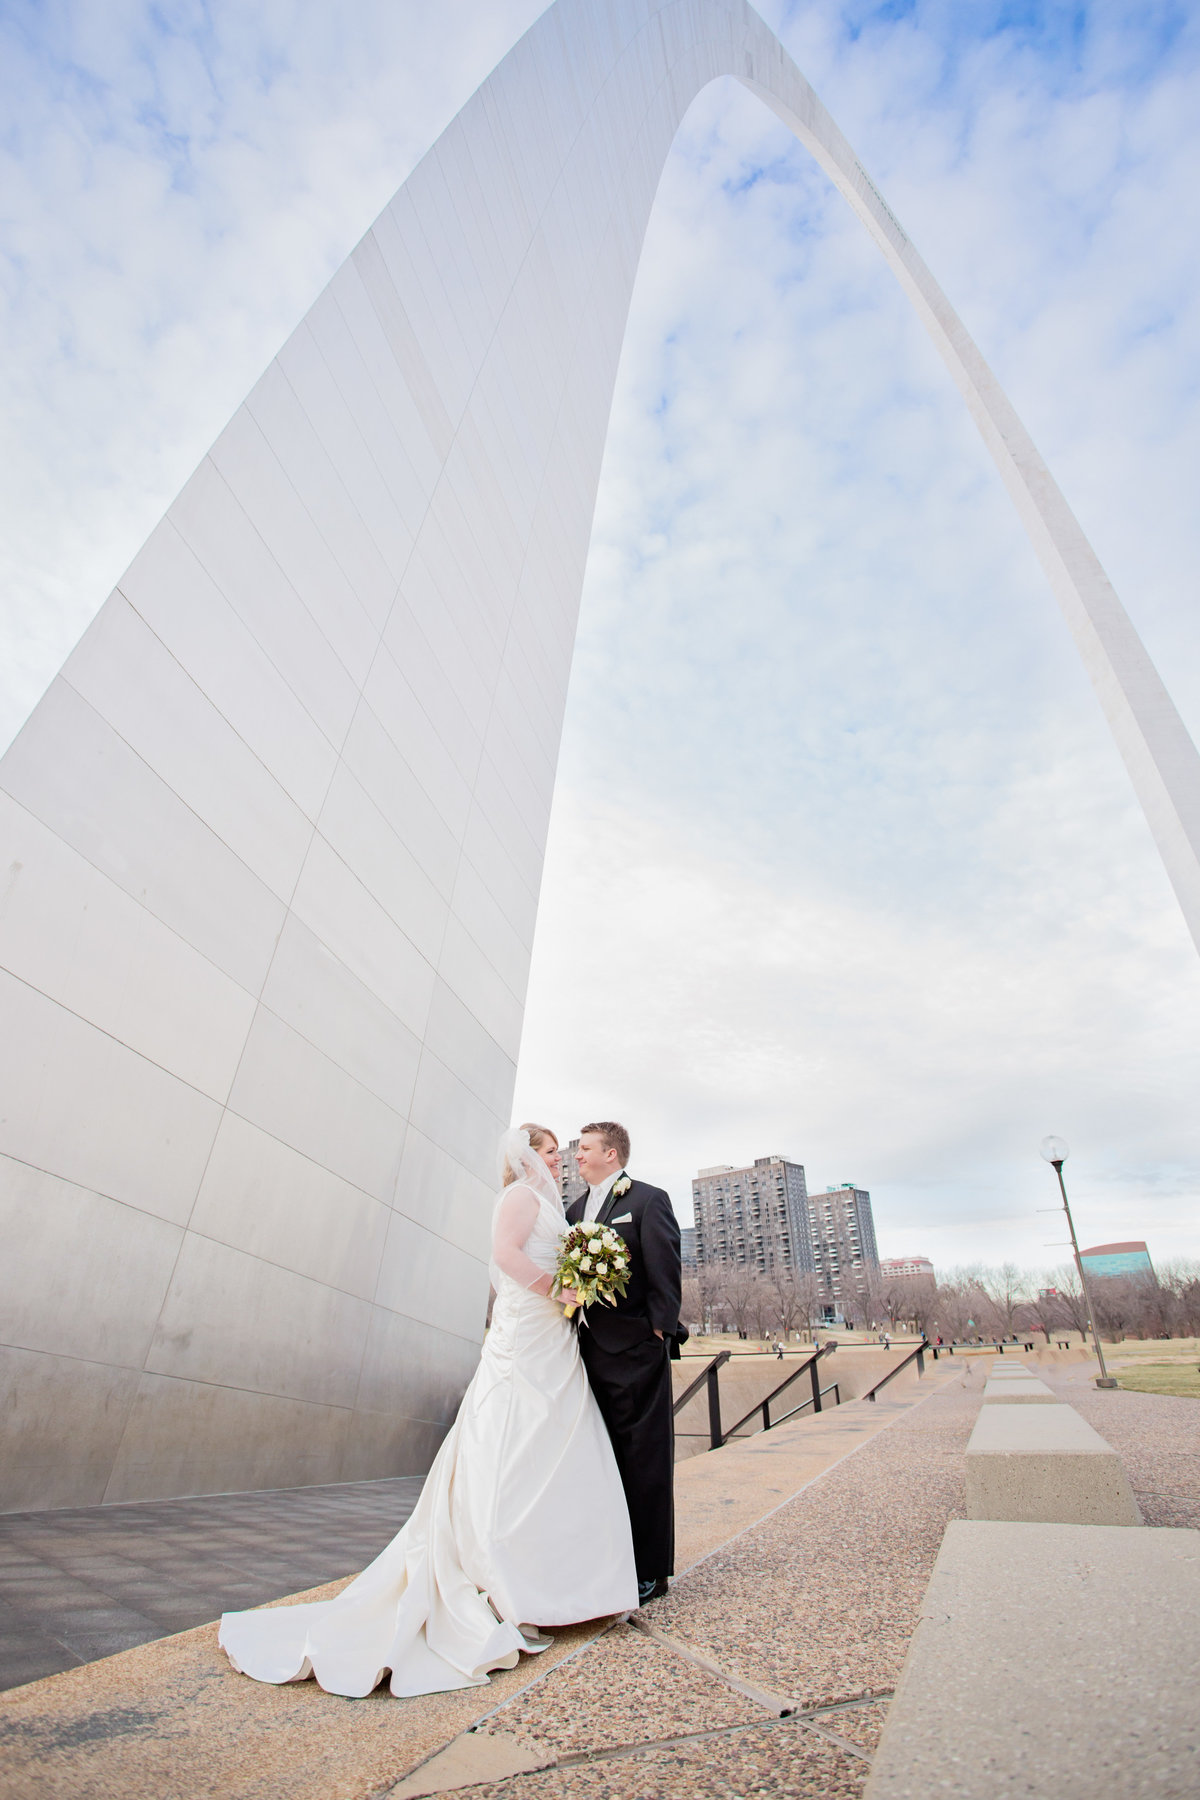 Weddings - Holly Dawn Photography - Wedding Photography - Family Photography - St. Charles - St. Louis - Missouri -31